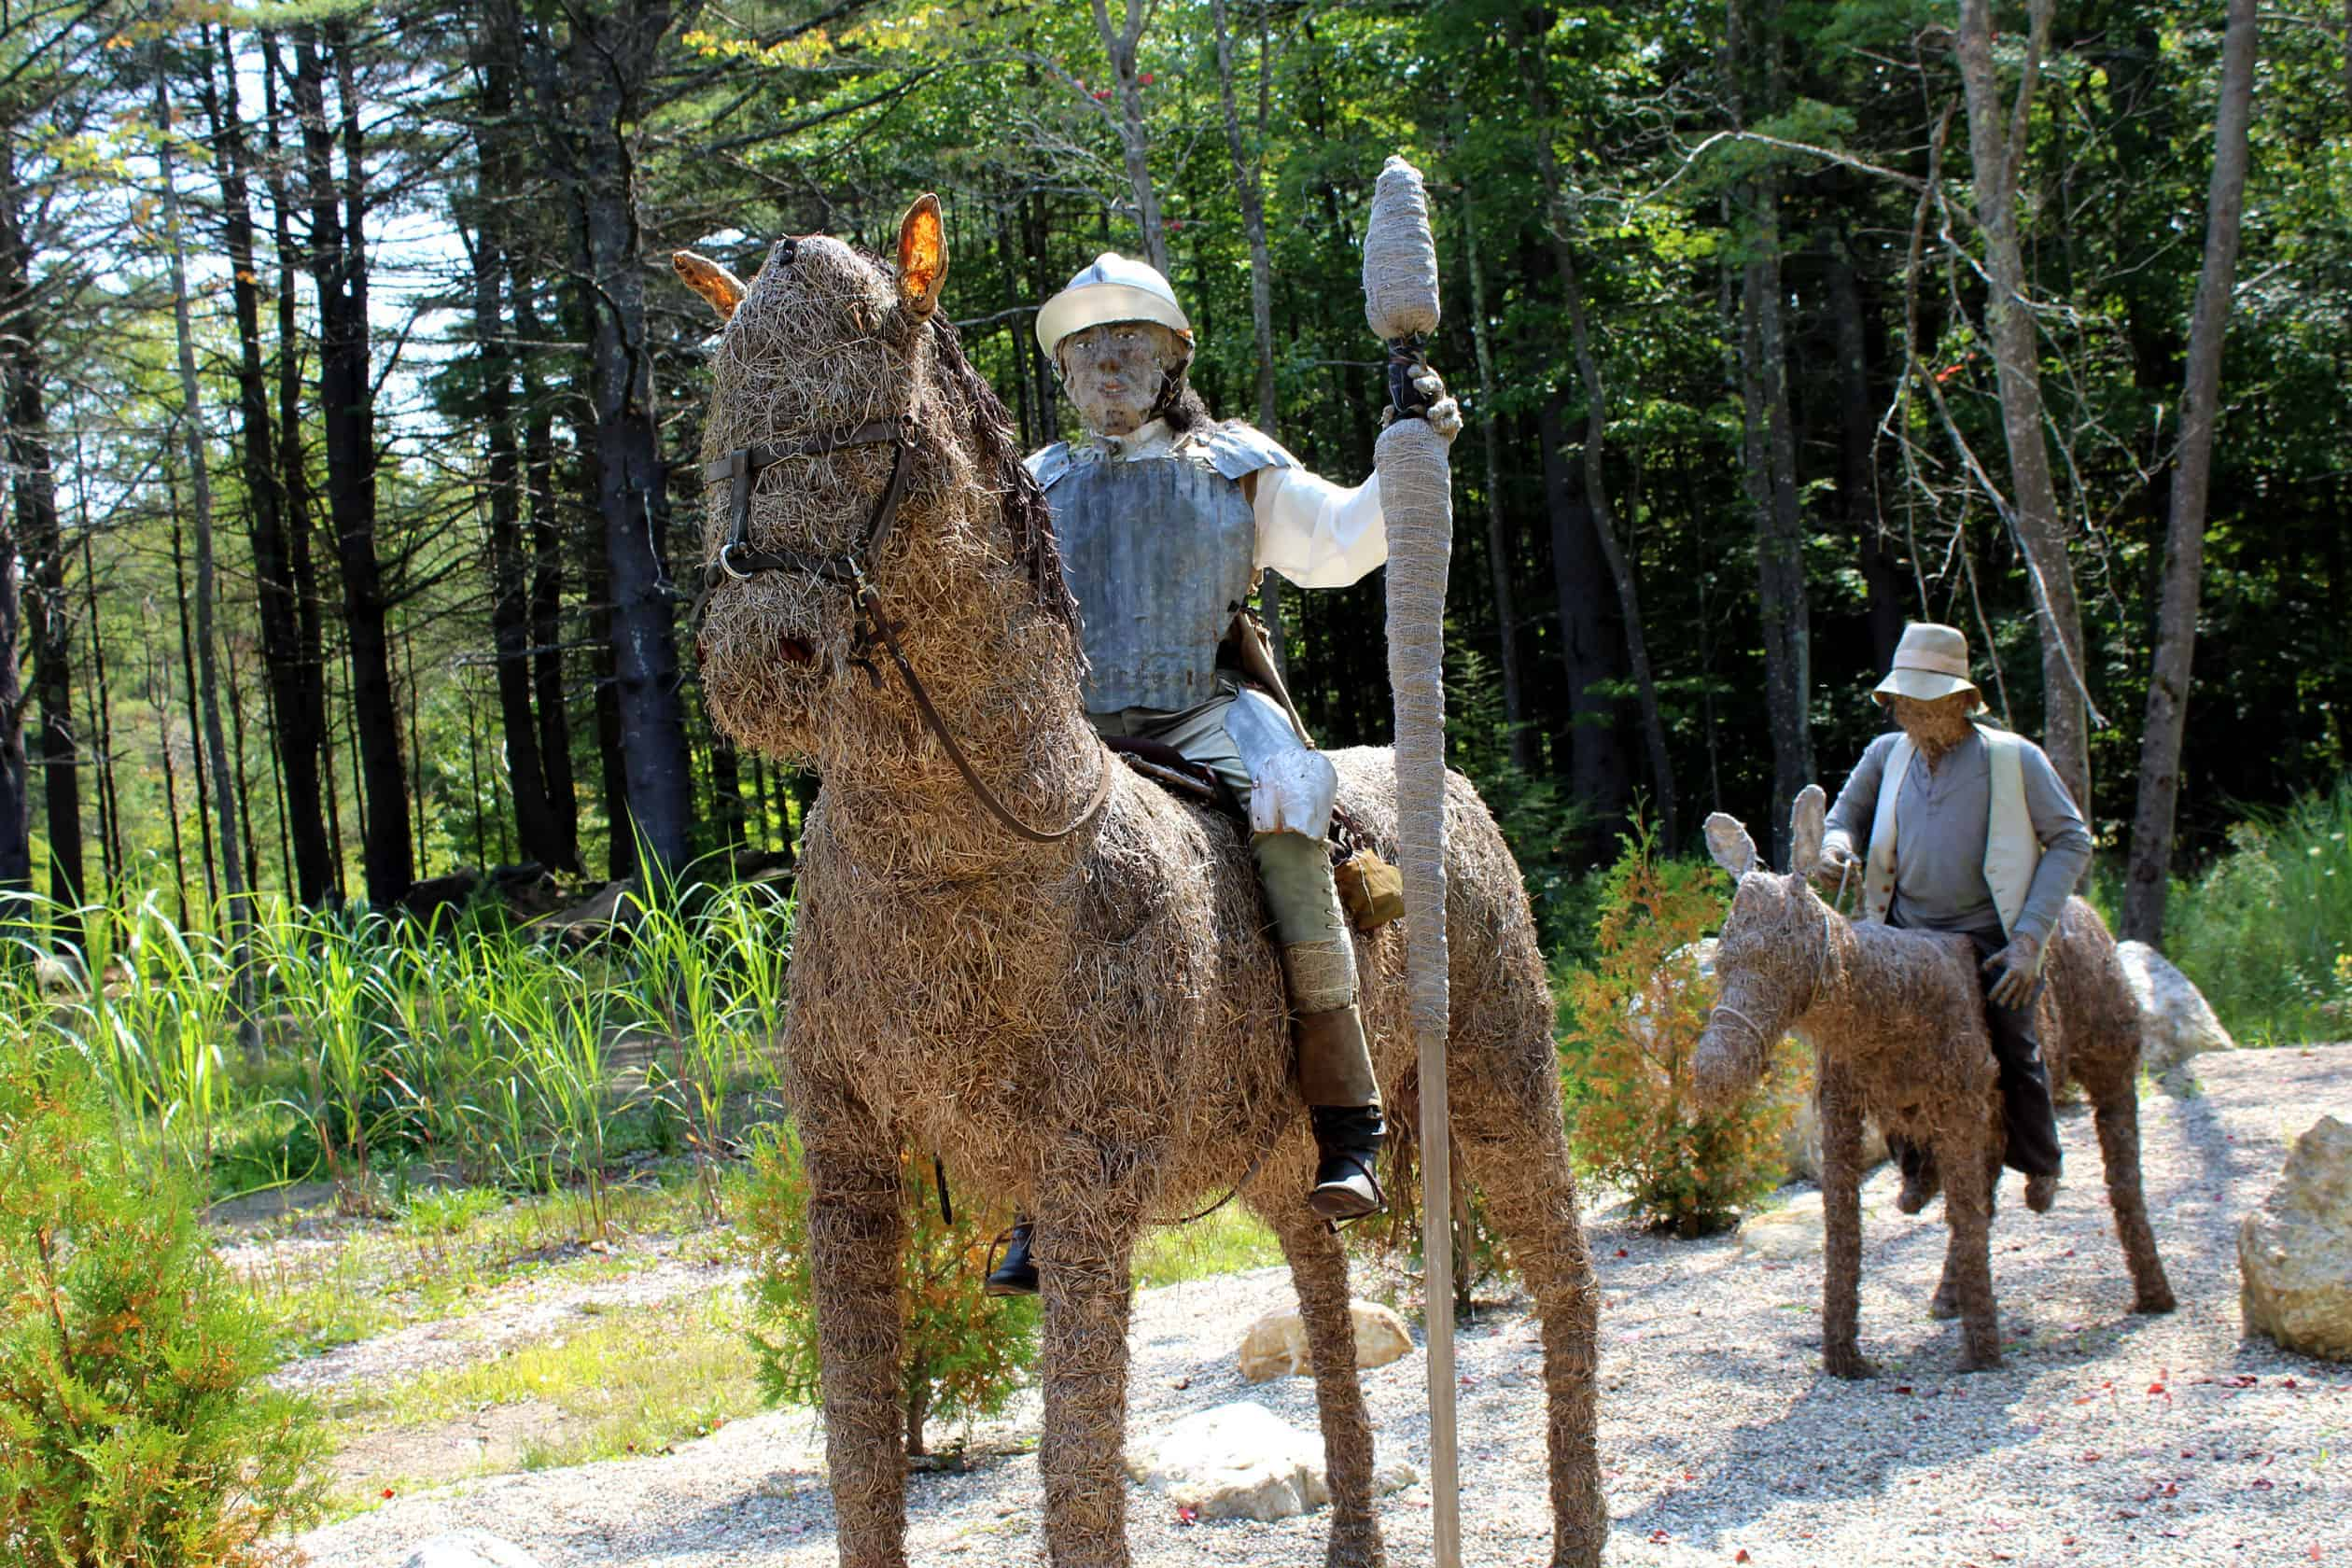 Don Quixote rides with Sancho Panza, the peasant laborer — greedy but kind, faithful but cowardly — Quixote takes as his squire. (Hint: Route 112 near the Ashfield town line.) Photo by Thom Smith